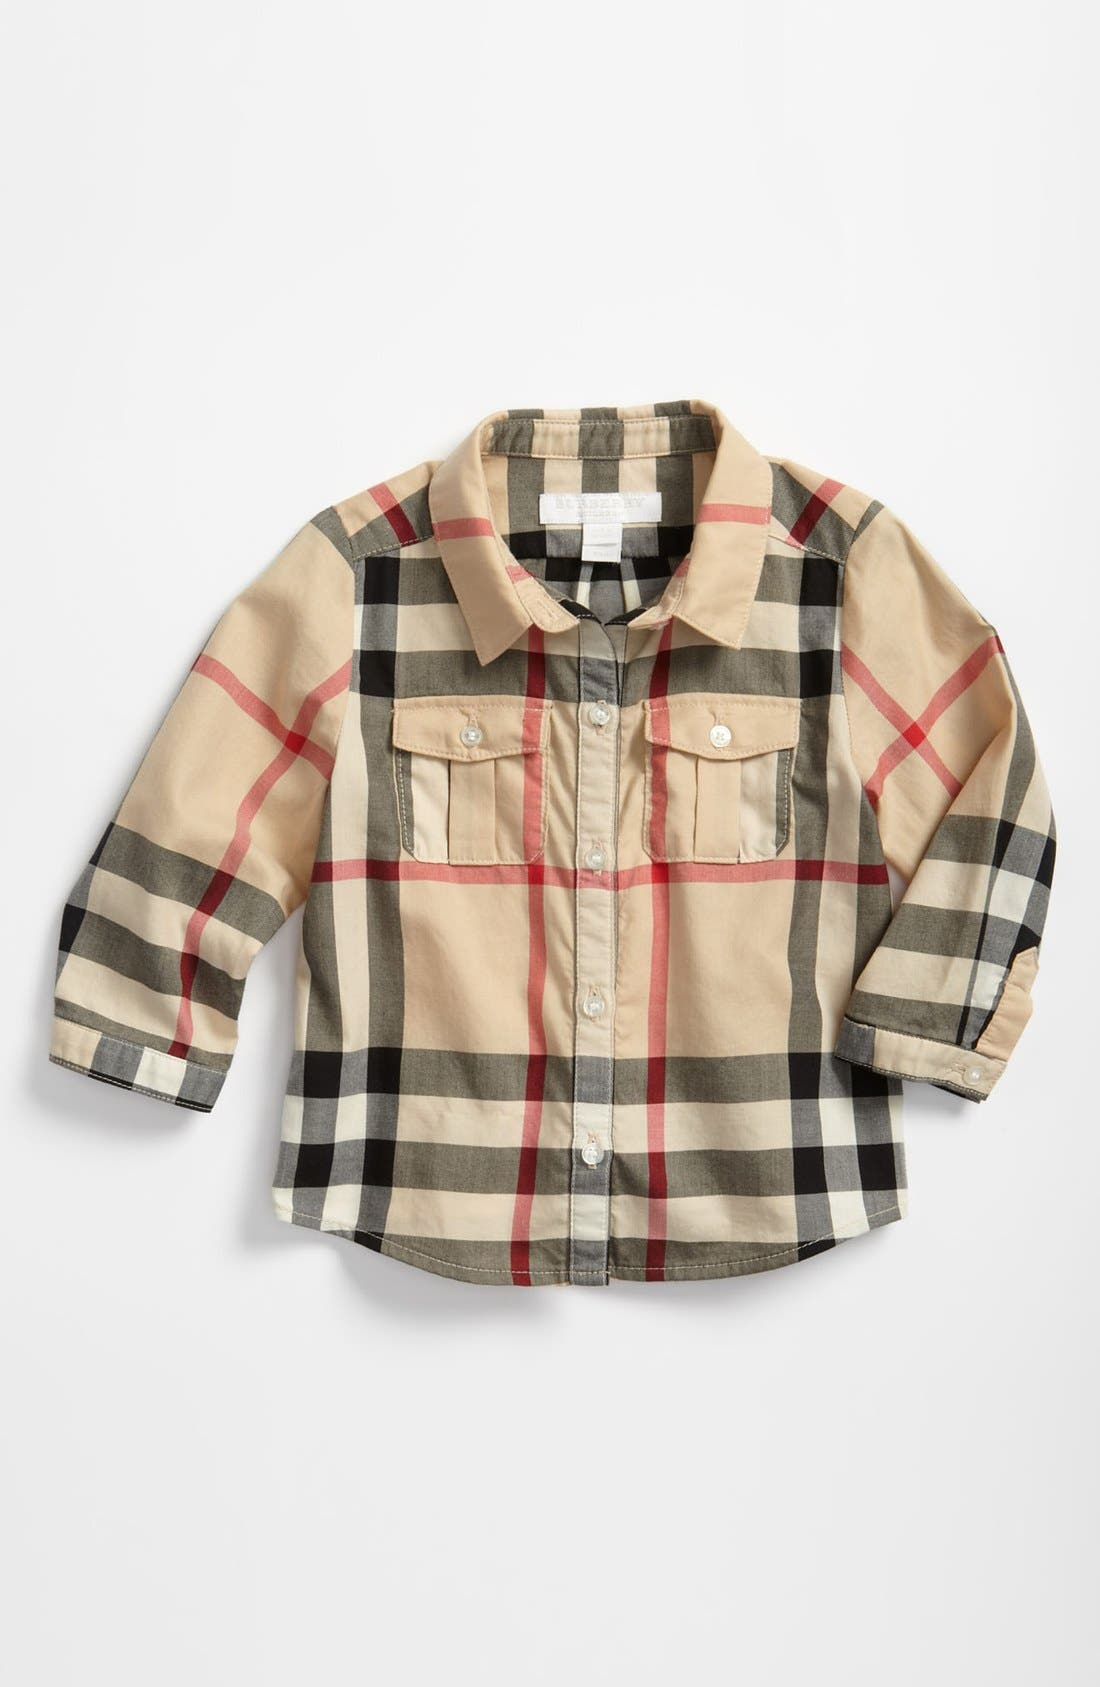 Main Image - Burberry Check Print Shirt (Toddler Boys)